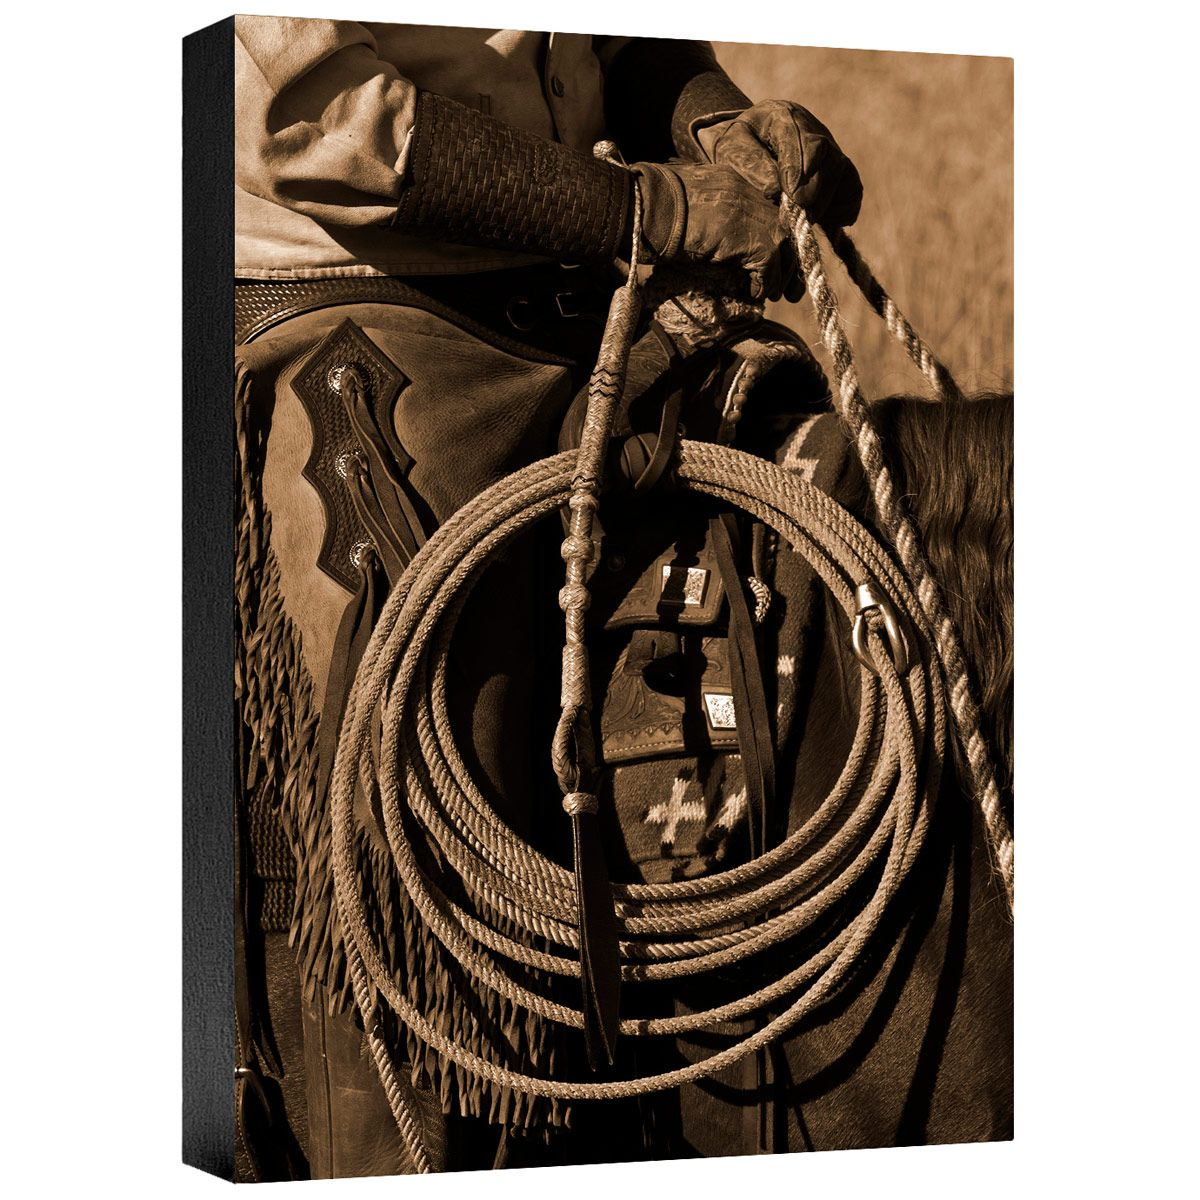 Hired Hand II Gallery Wrapped Canvas